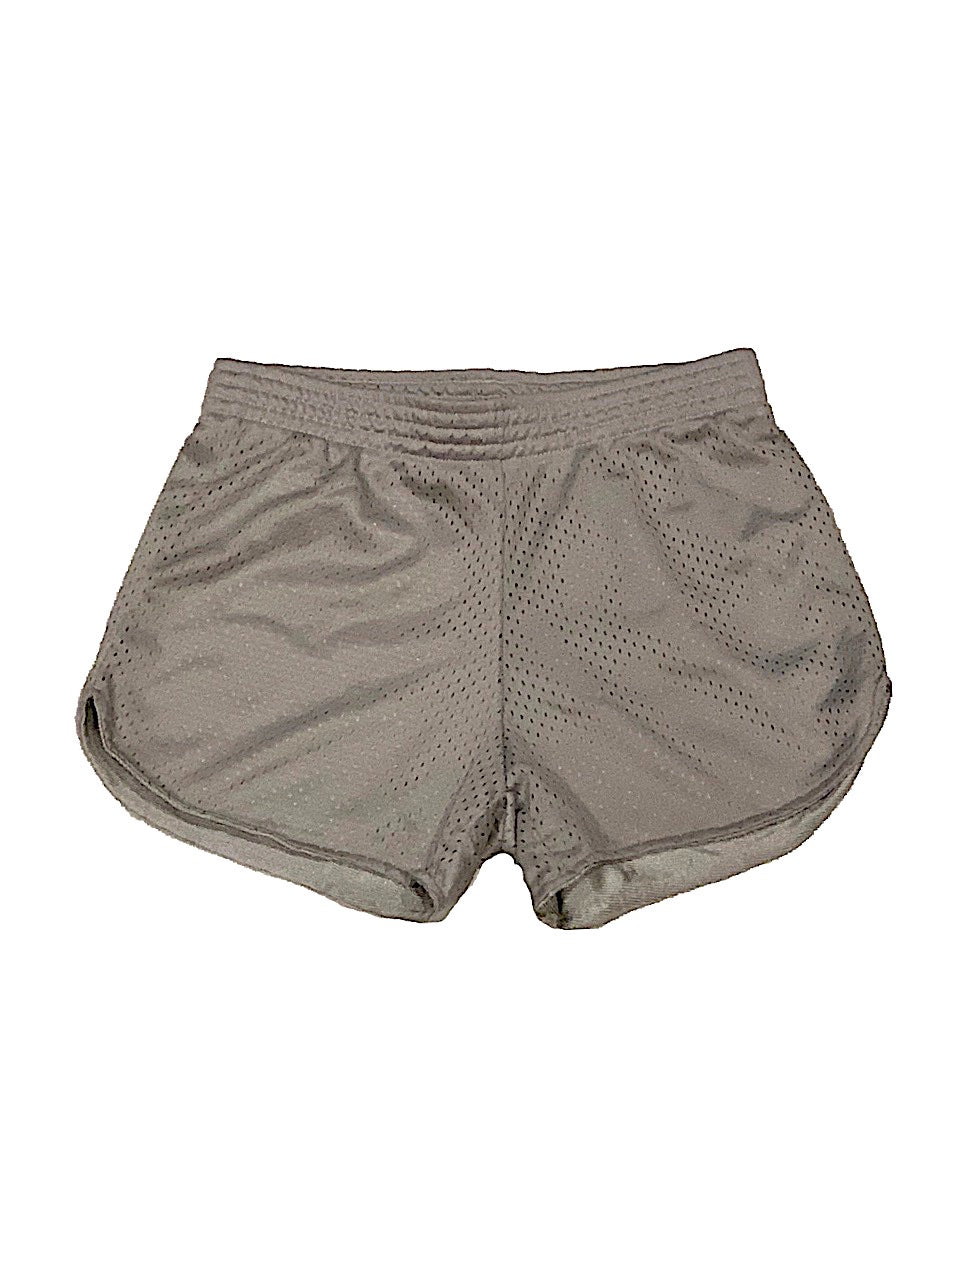 Firehouse Silver Mesh Shorts